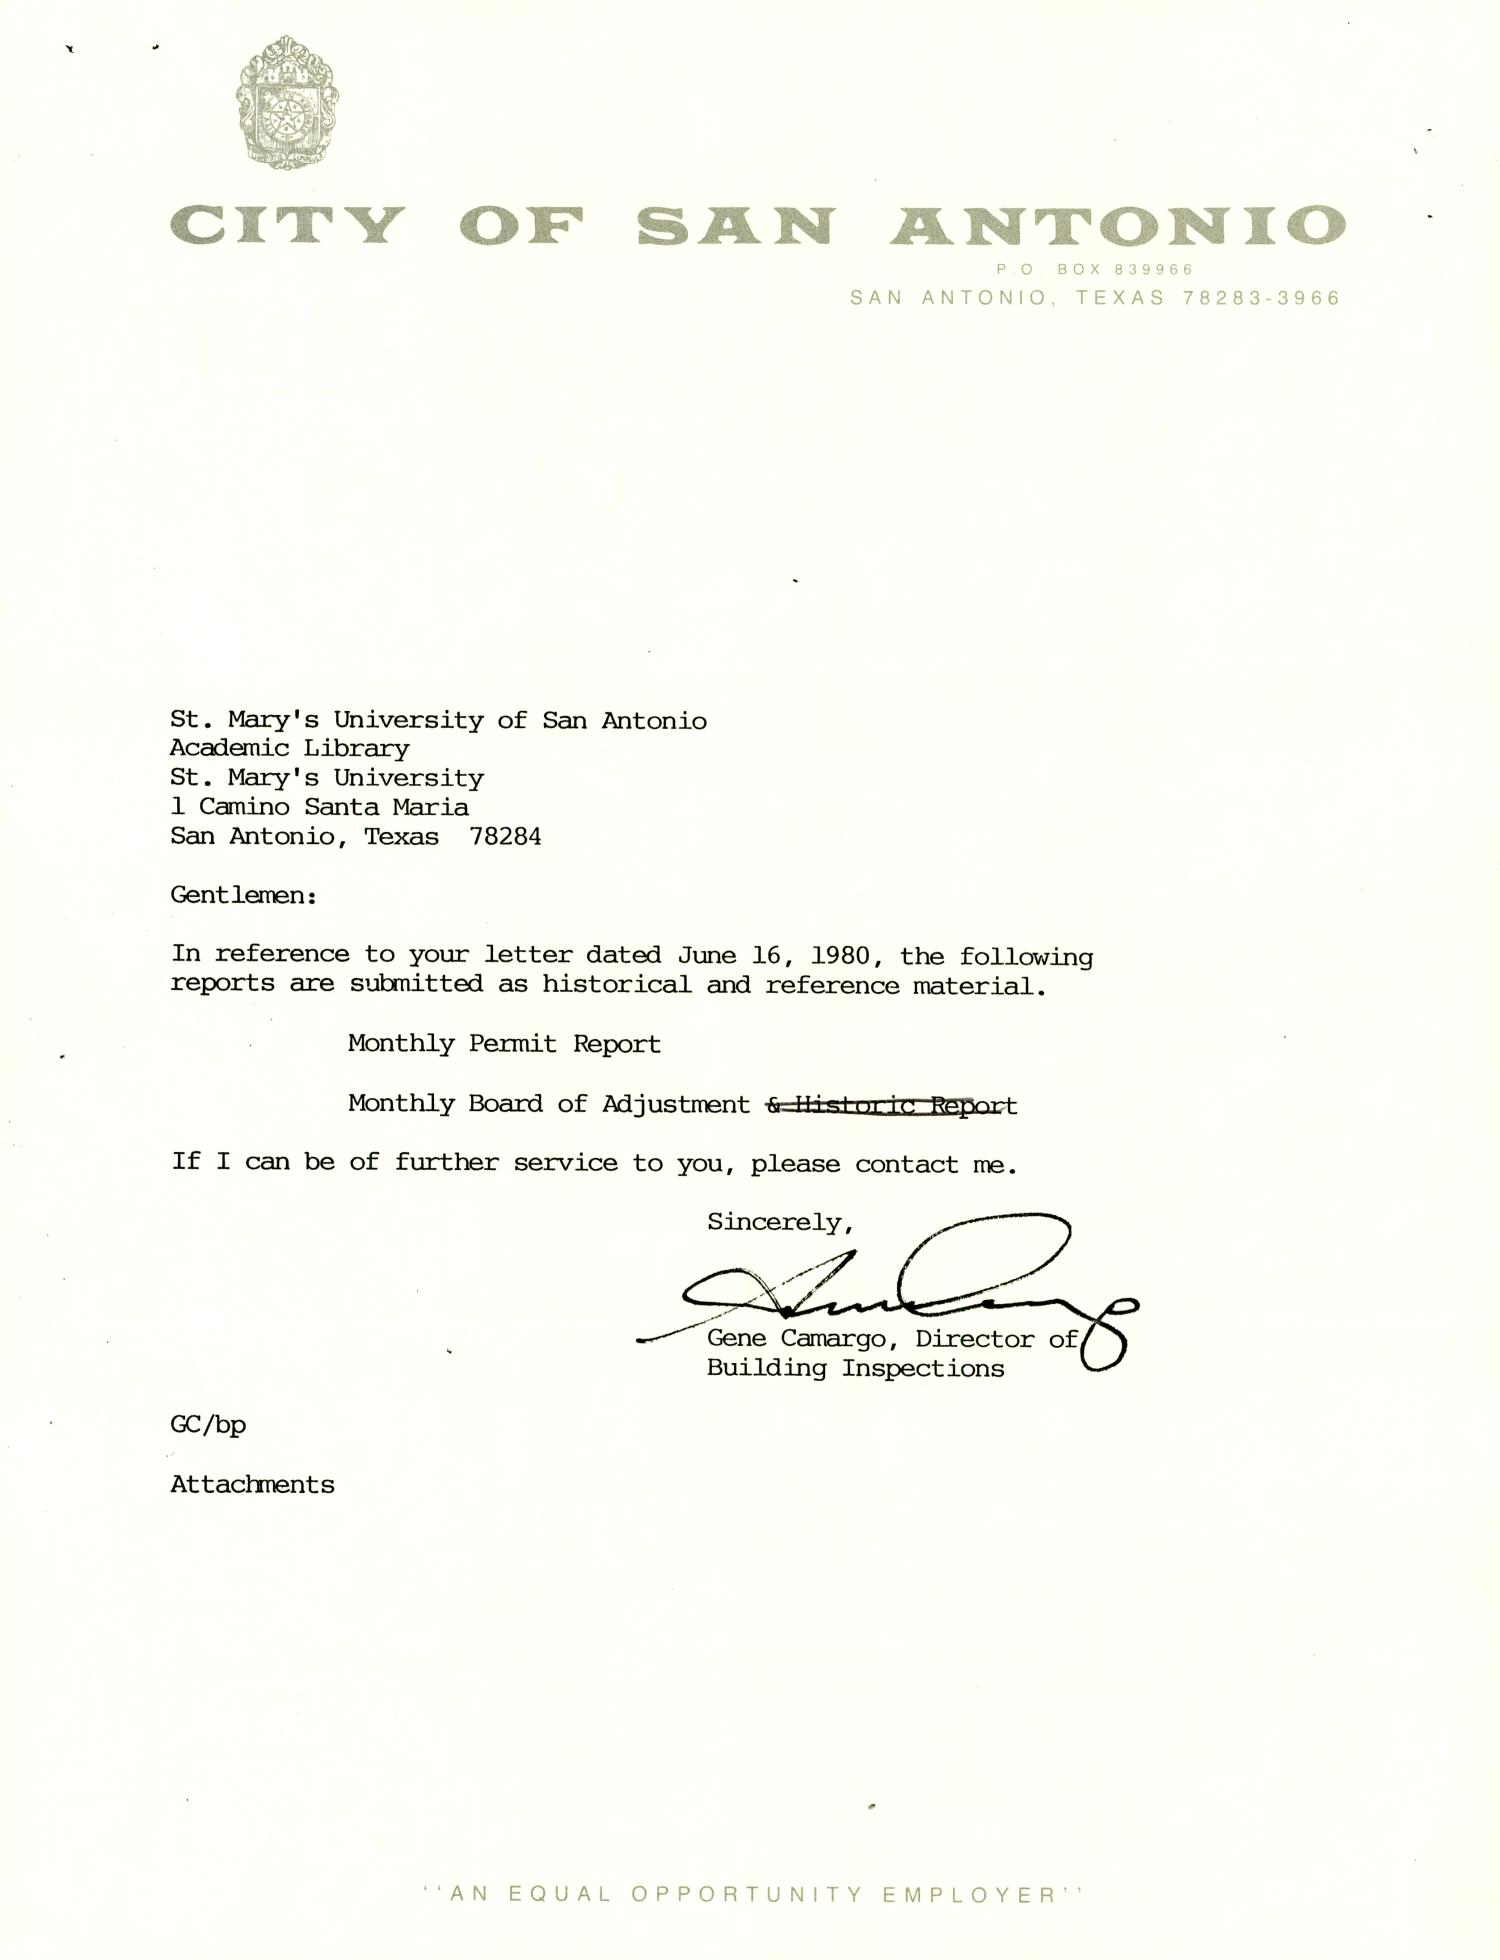 City of San Antonio Monthly Permit Report and Monthly Board of Adjustment Report: January 1994                                                                                                      Letter